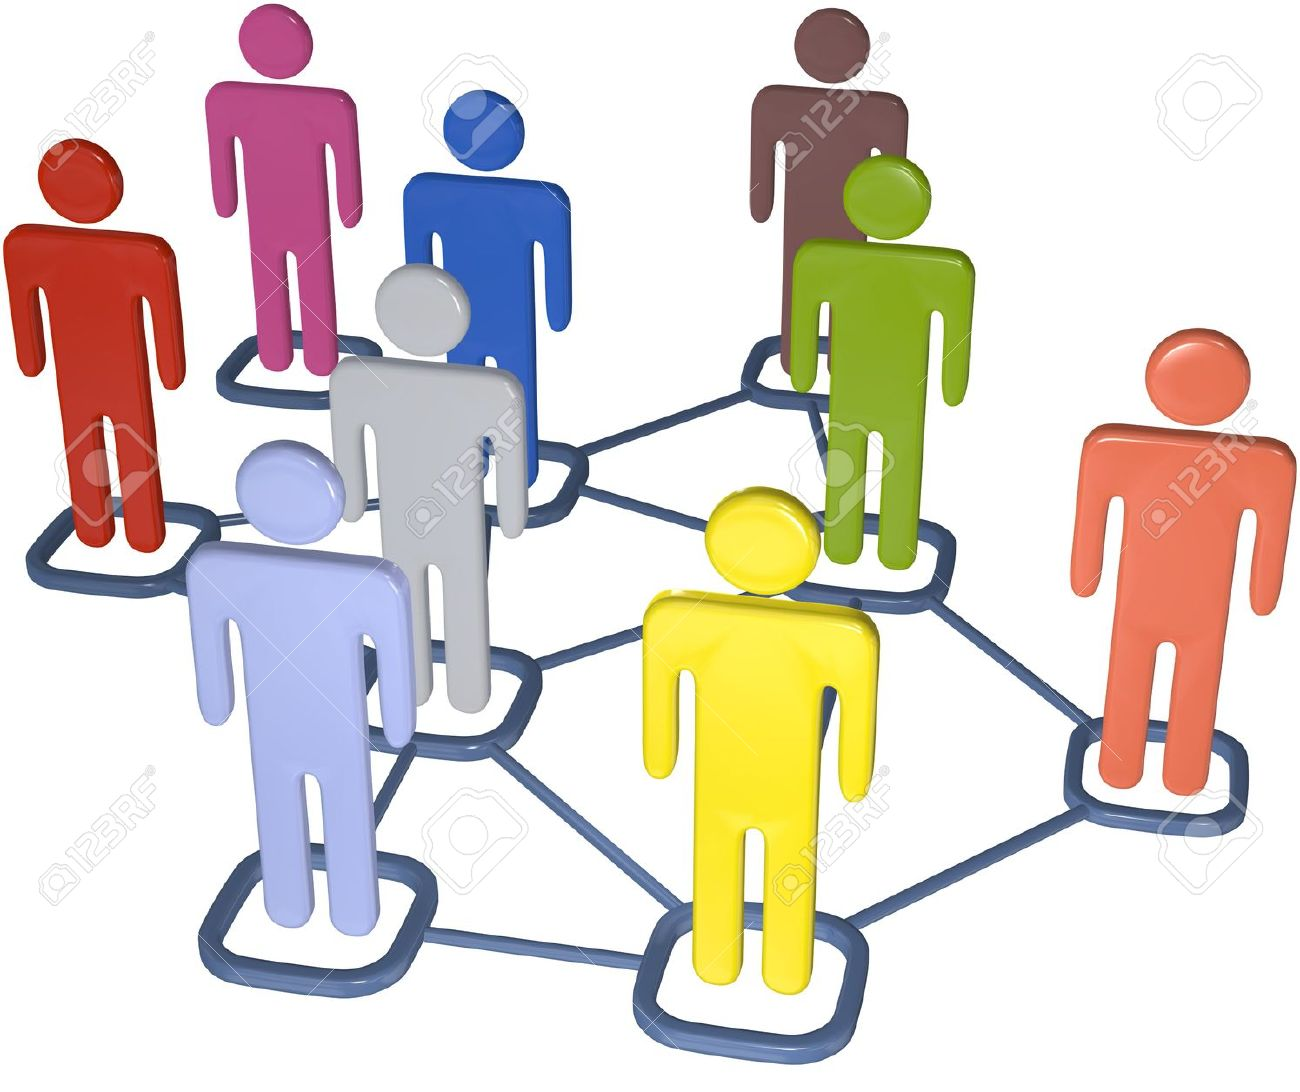 Symbol people connect in nodes of 3D social media network. Stock Photo - 7794517